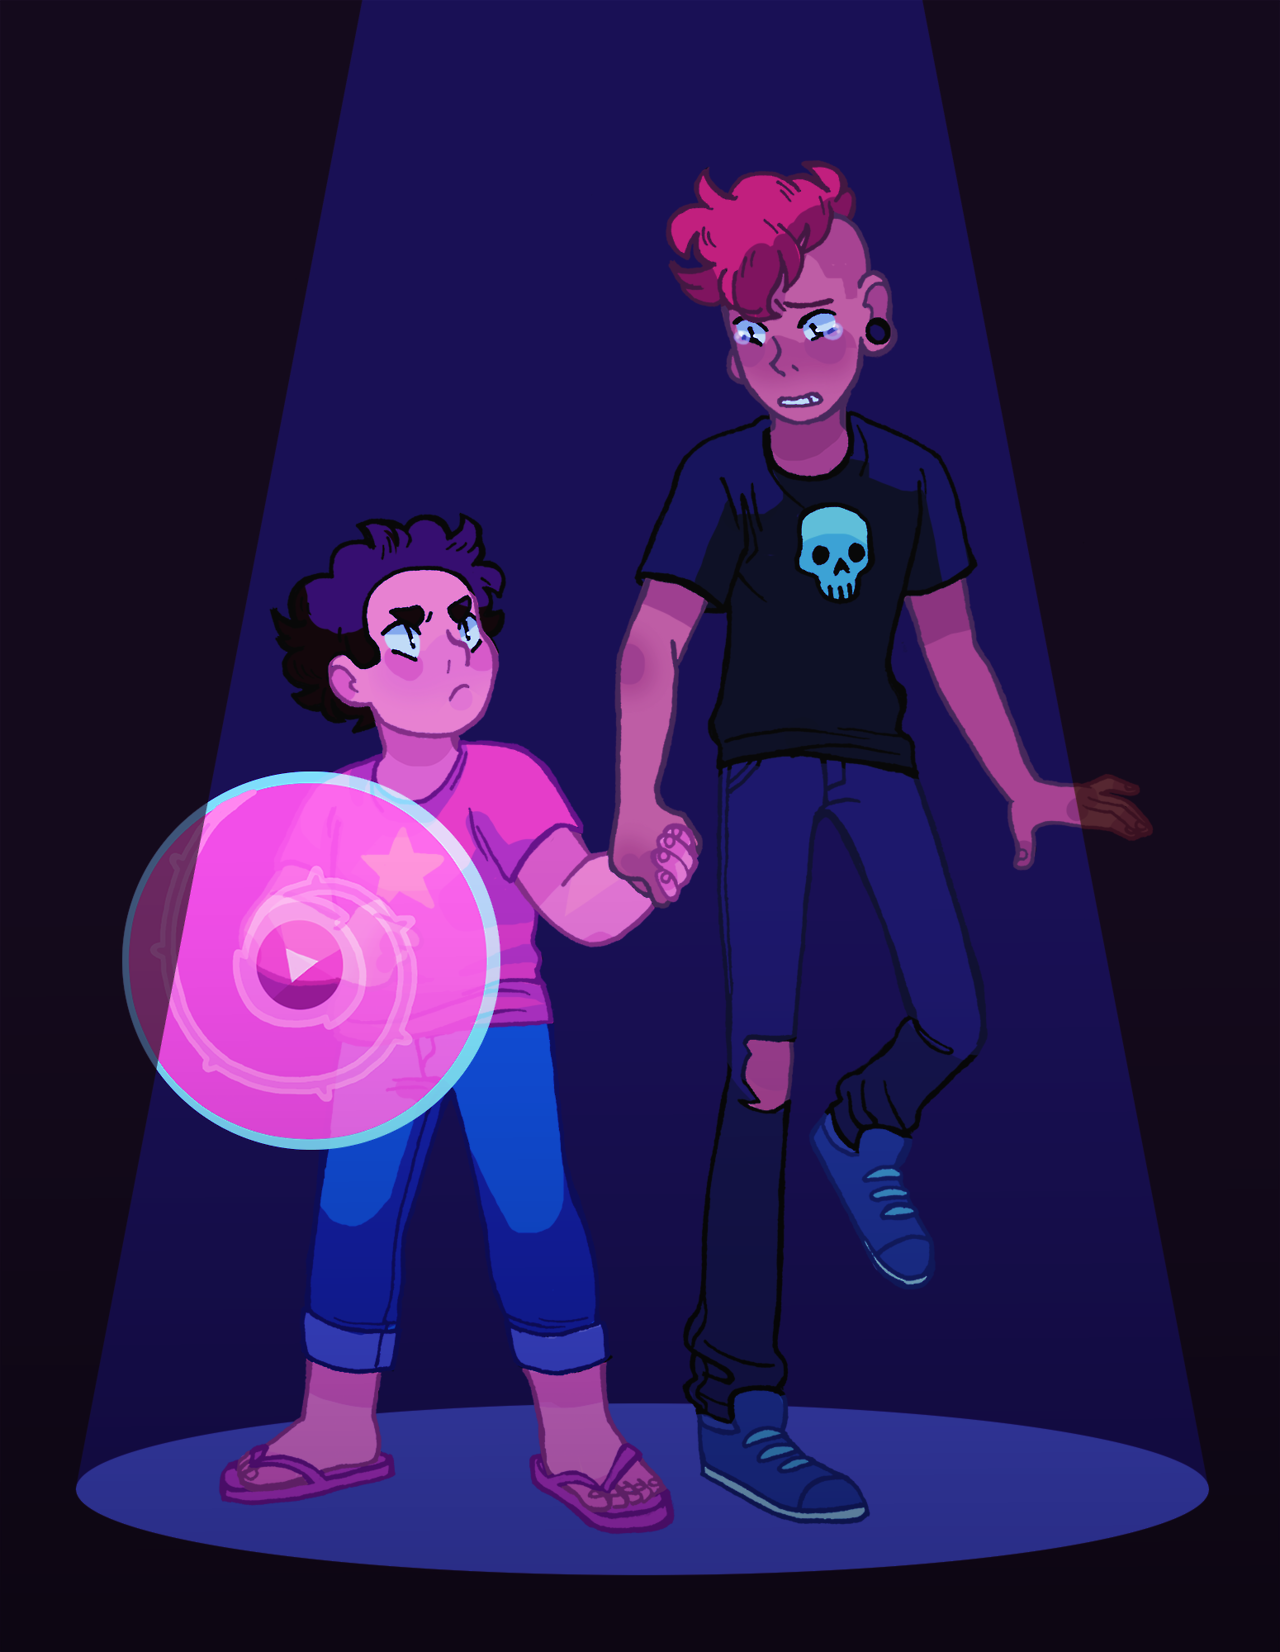 can't wait for Steven and Lars to save the world